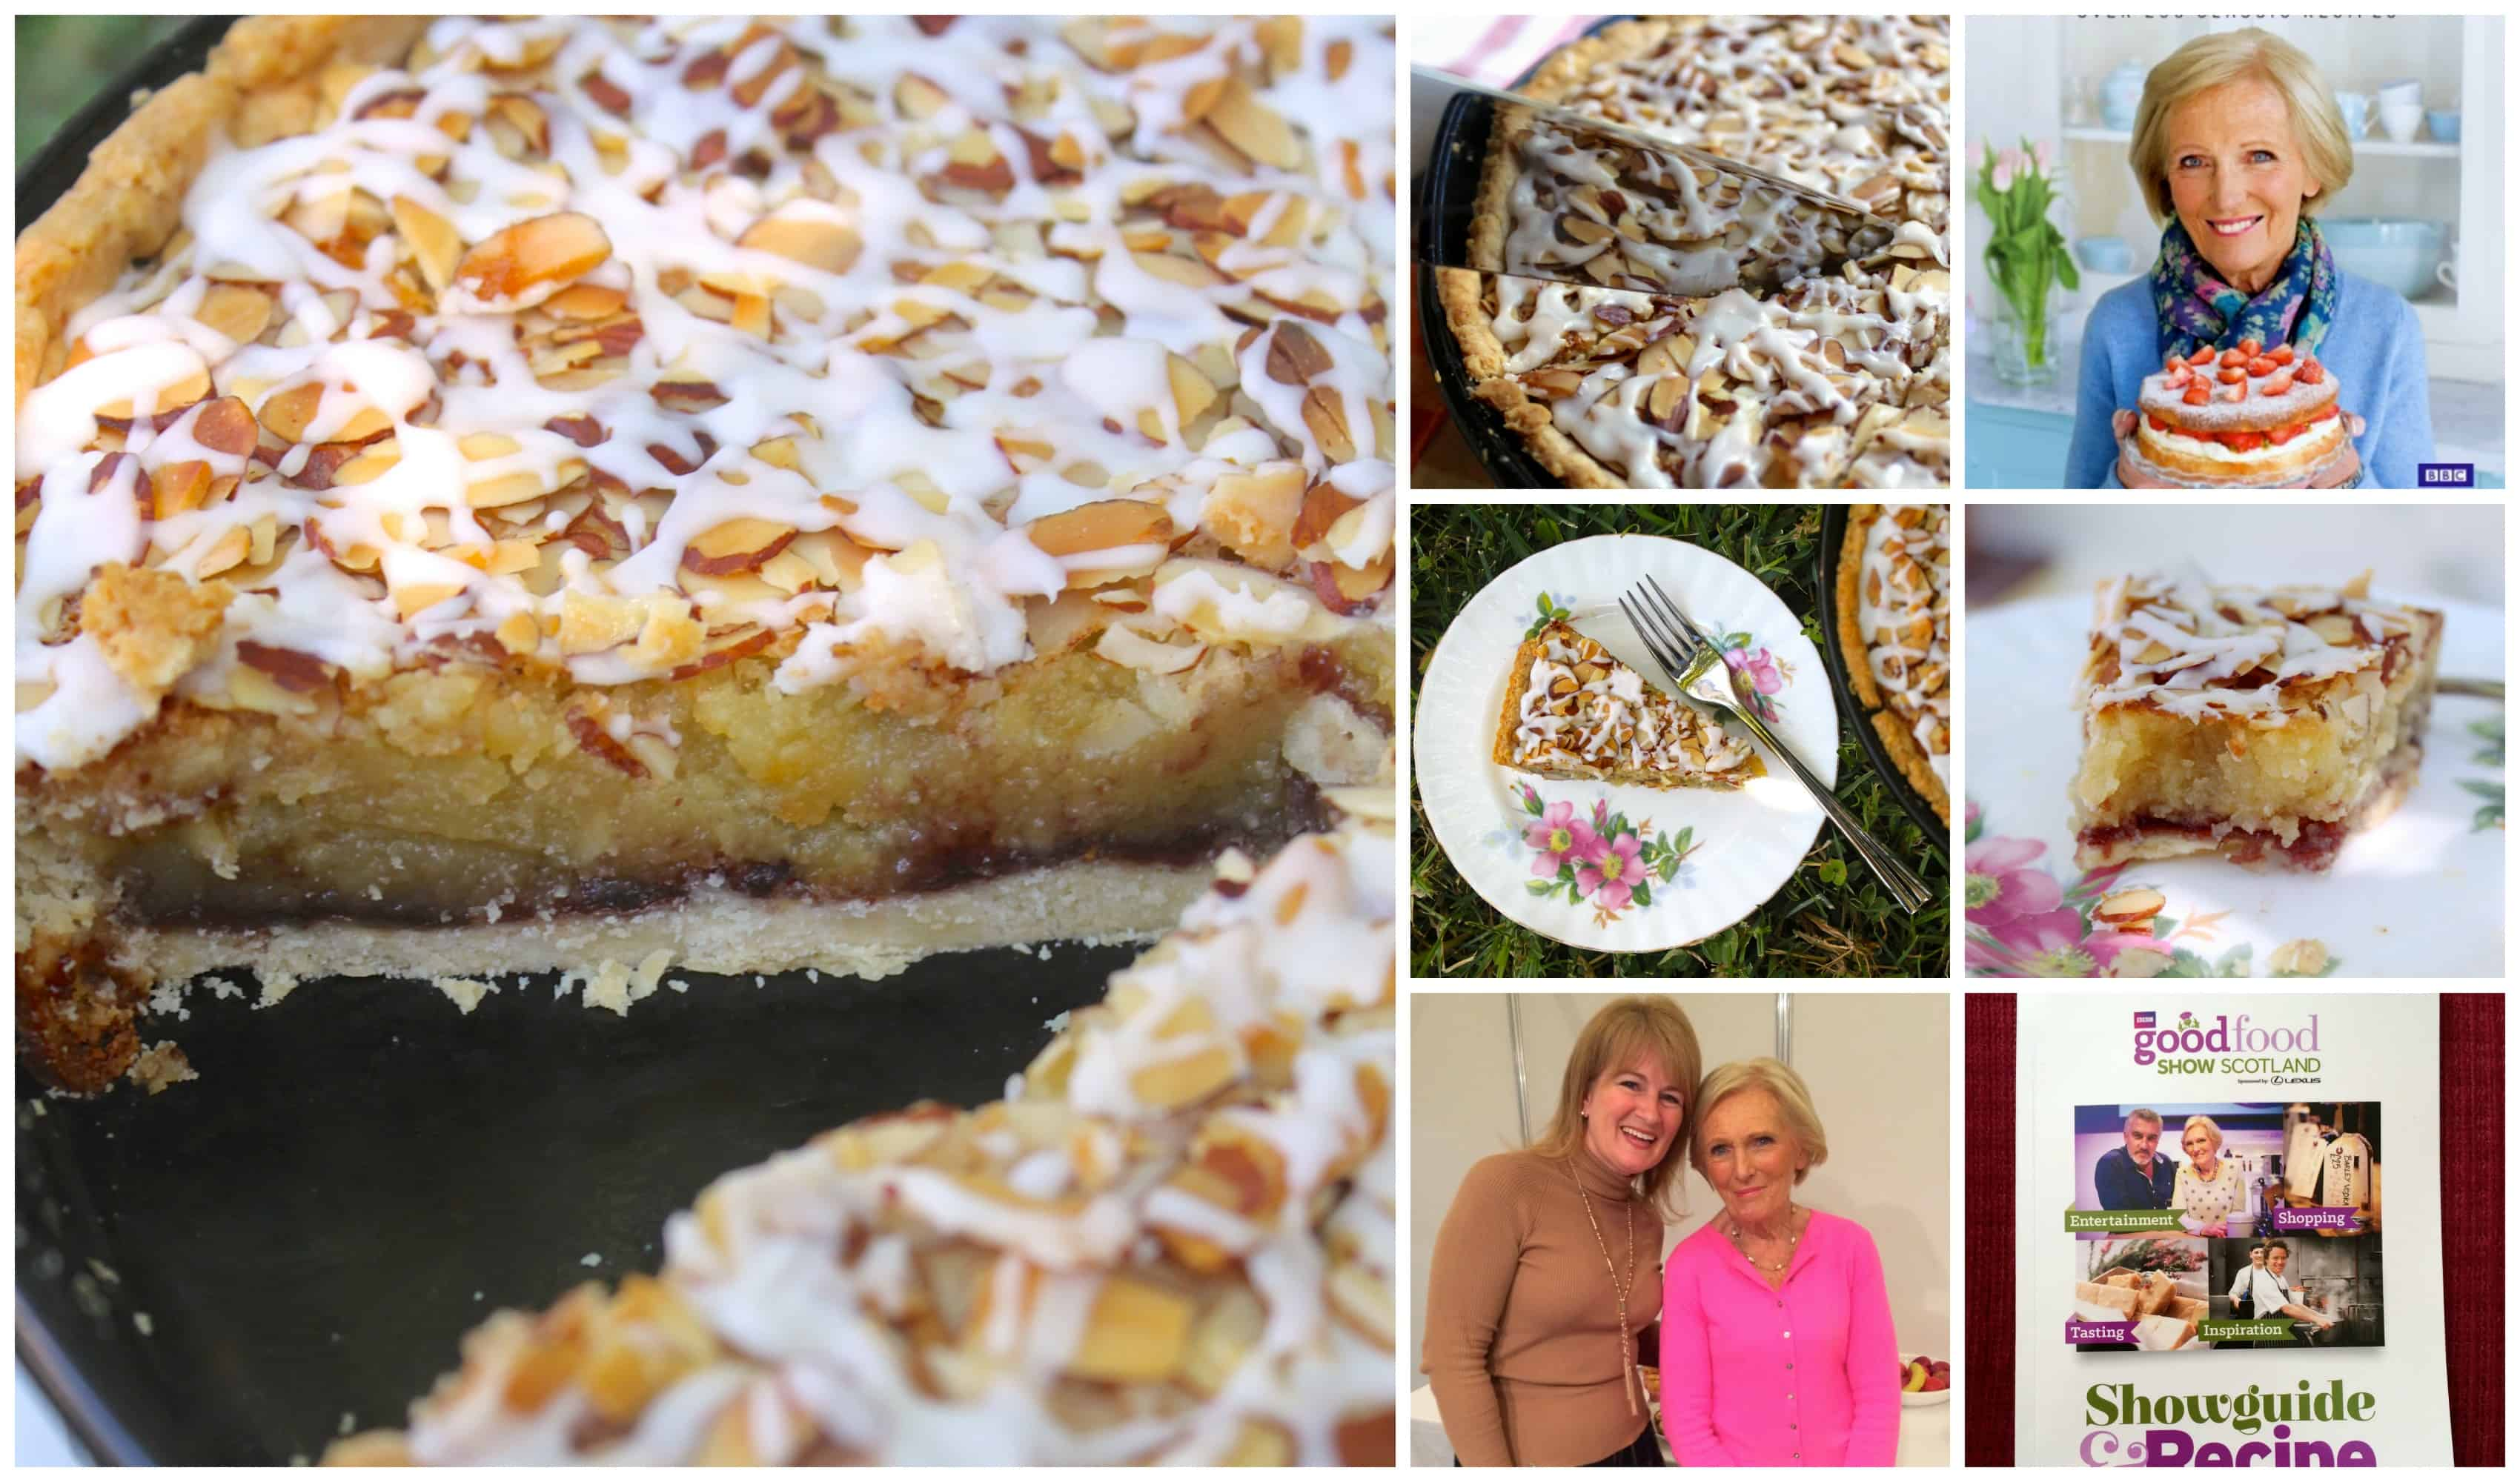 Mary Berry and Bakewell tart